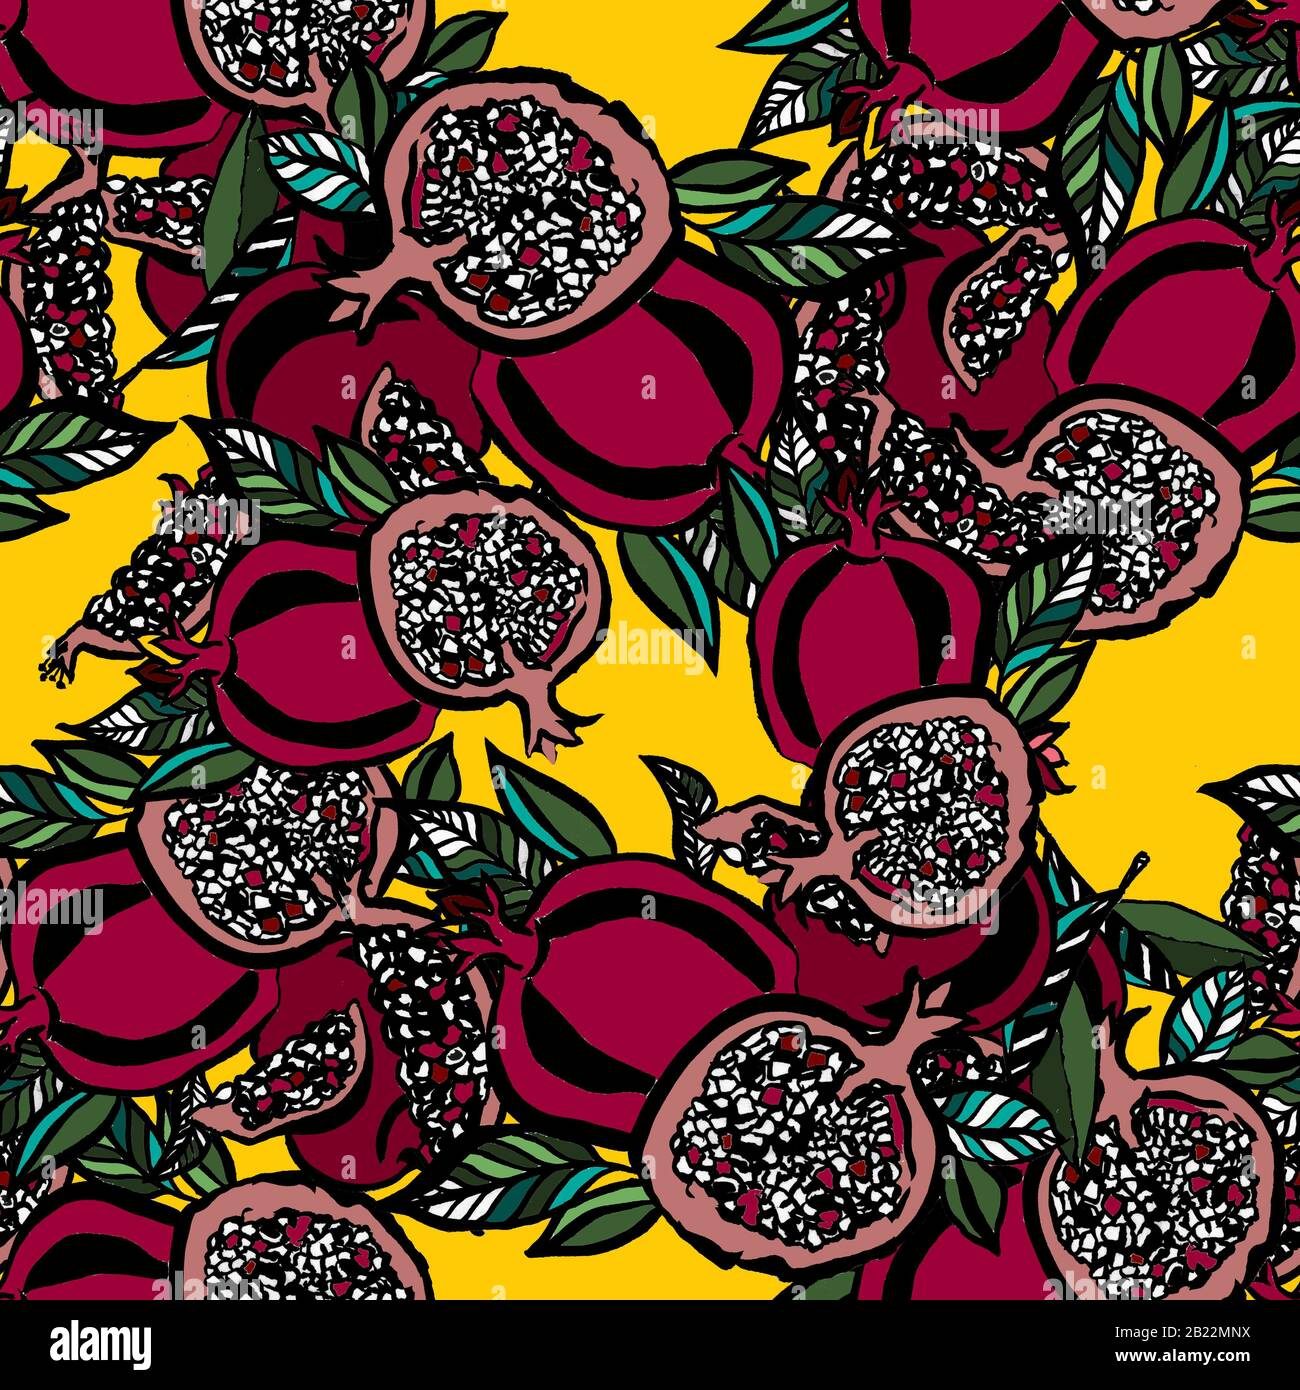 Pomegranate Seamless Pattern On Yellow Background Fabric Design Kitchen Decor Floral Illustration Hand Drawn With Inks Stock Photo Alamy